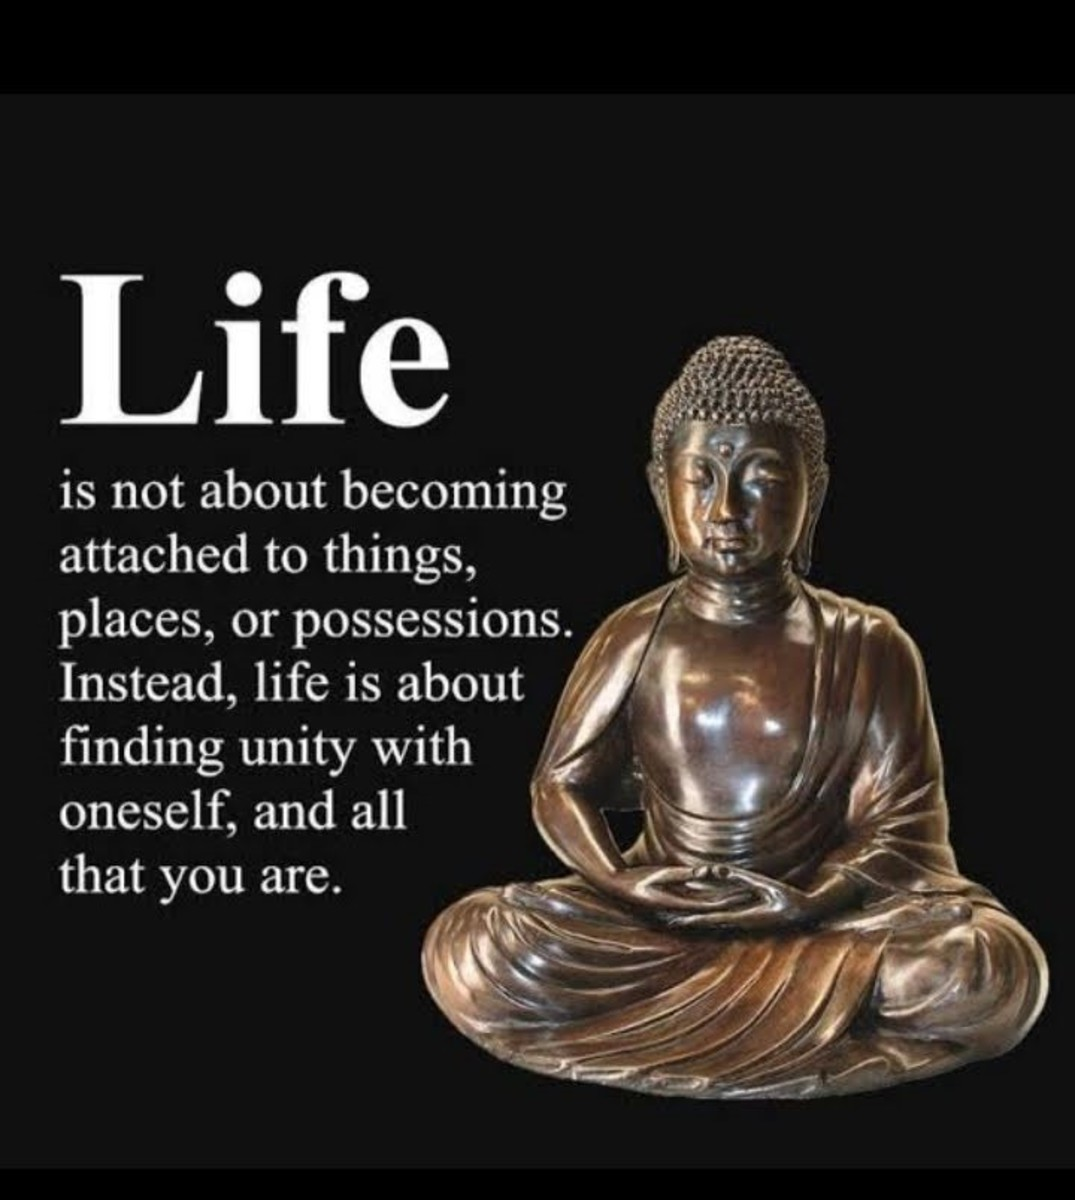 Quote by the Buddha